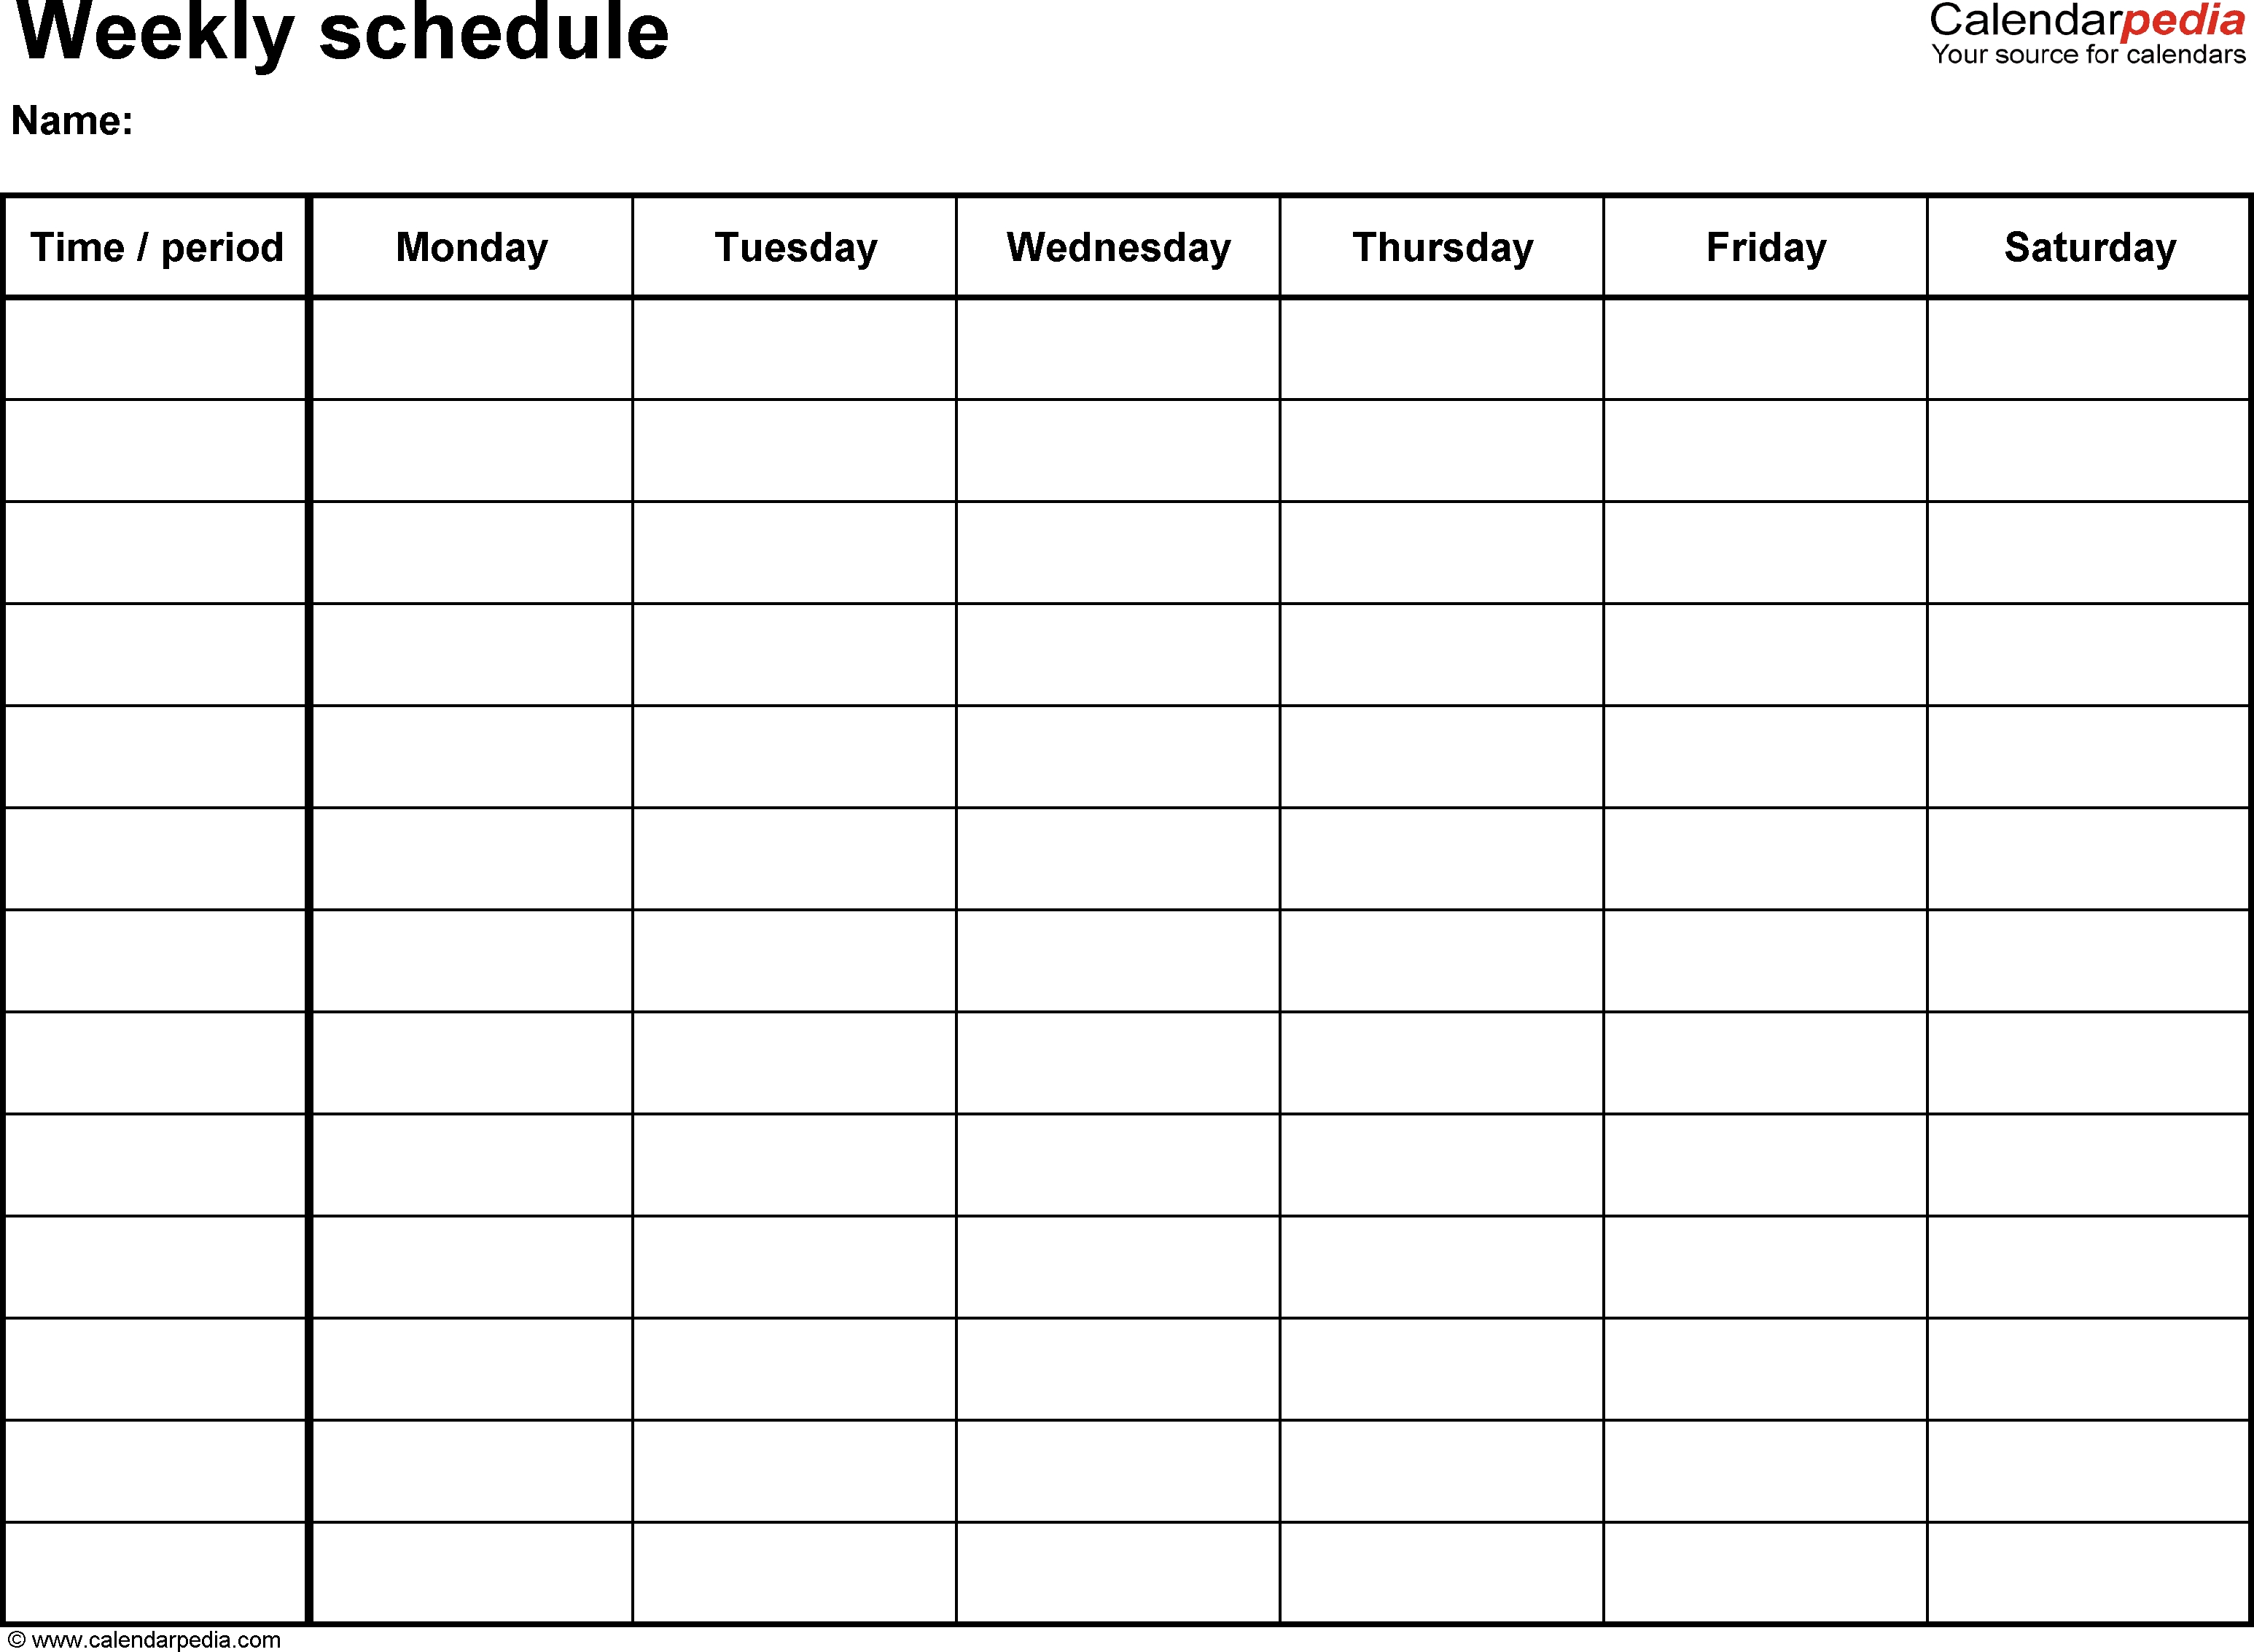 Free Weekly Schedule Templates For Word - 18 Templates  Blank Calendar To Fill In Free